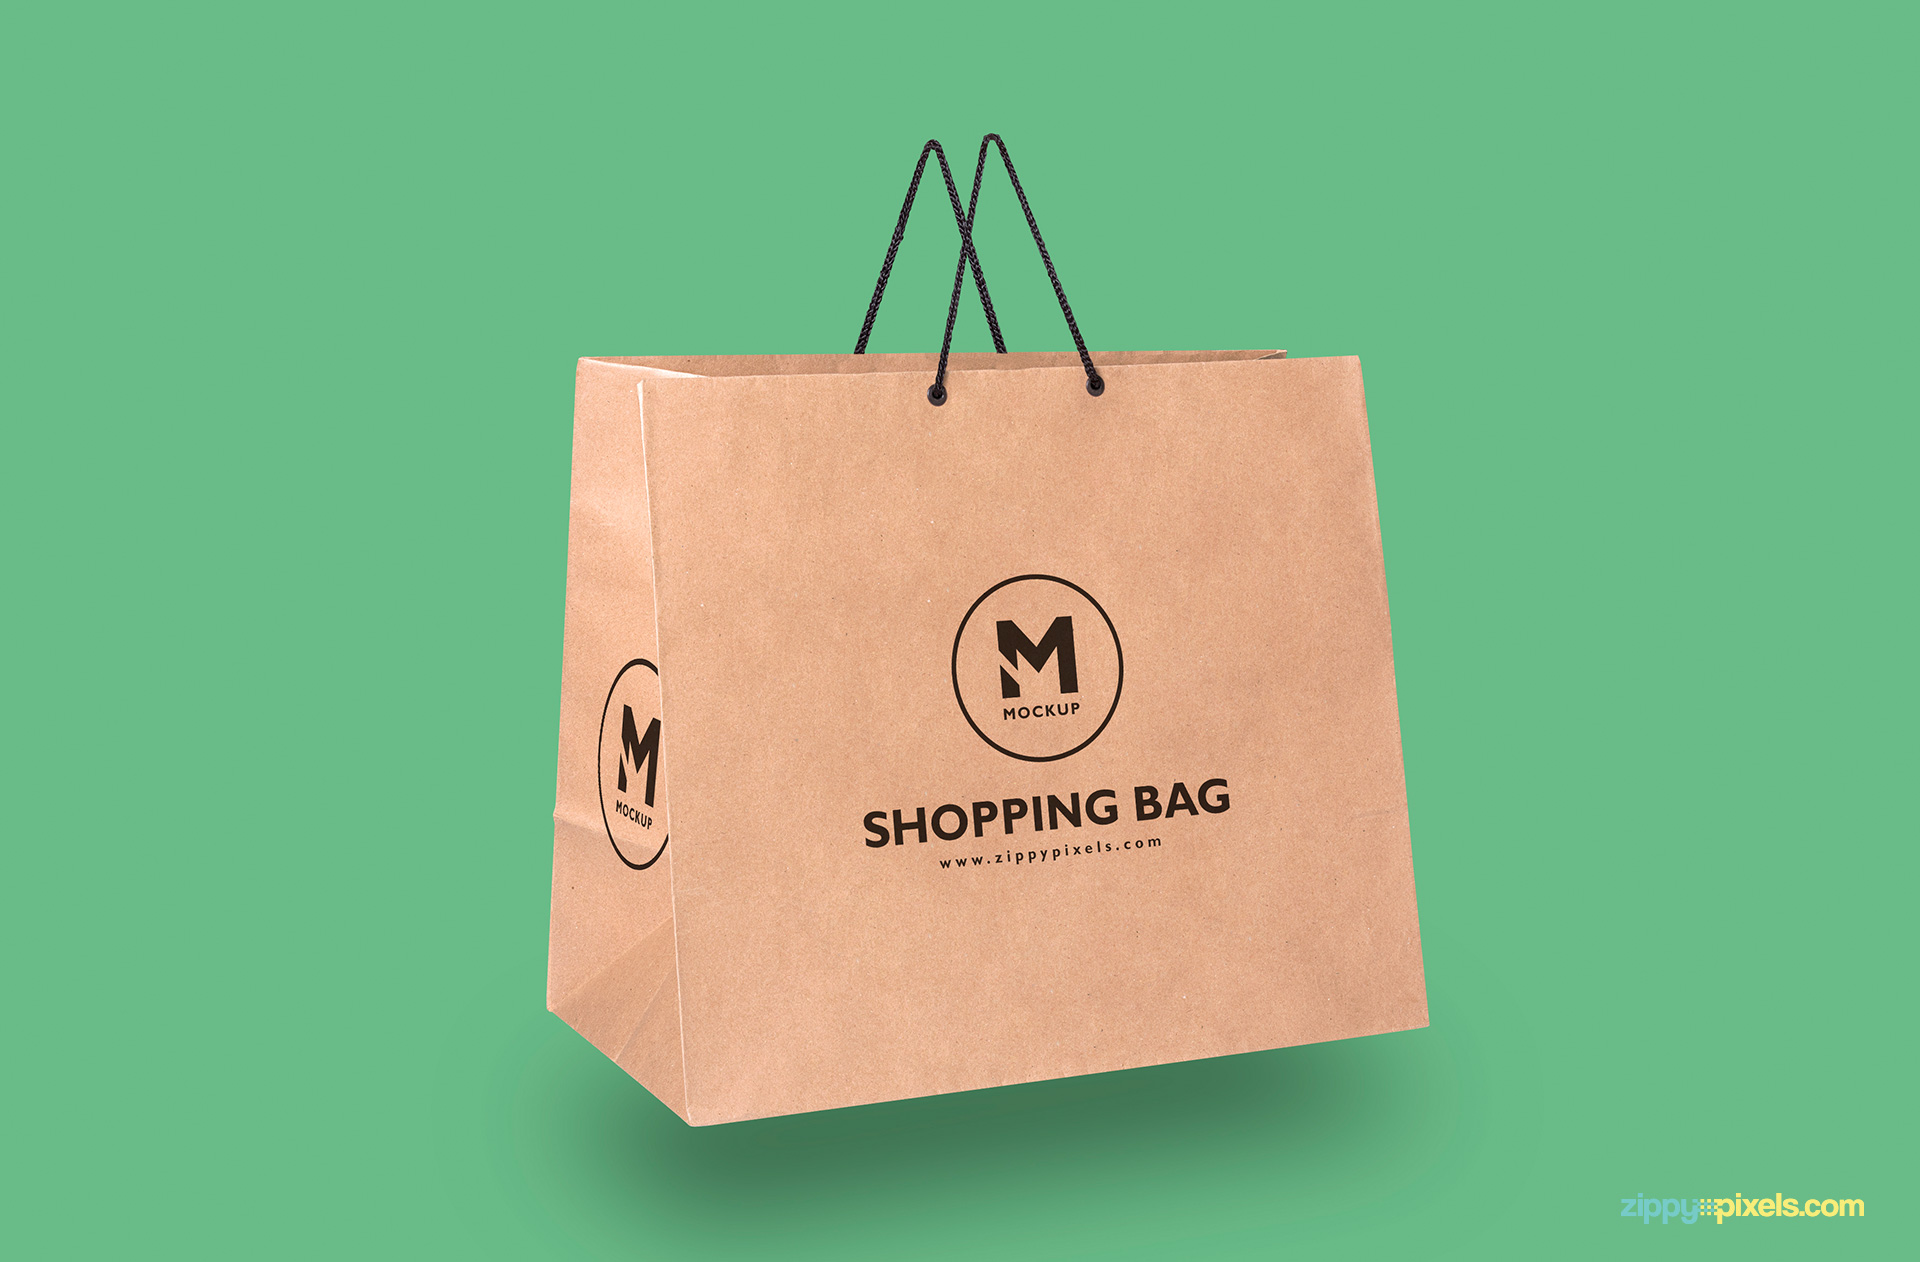 paper-bag-hovering-in-air-front-side-view